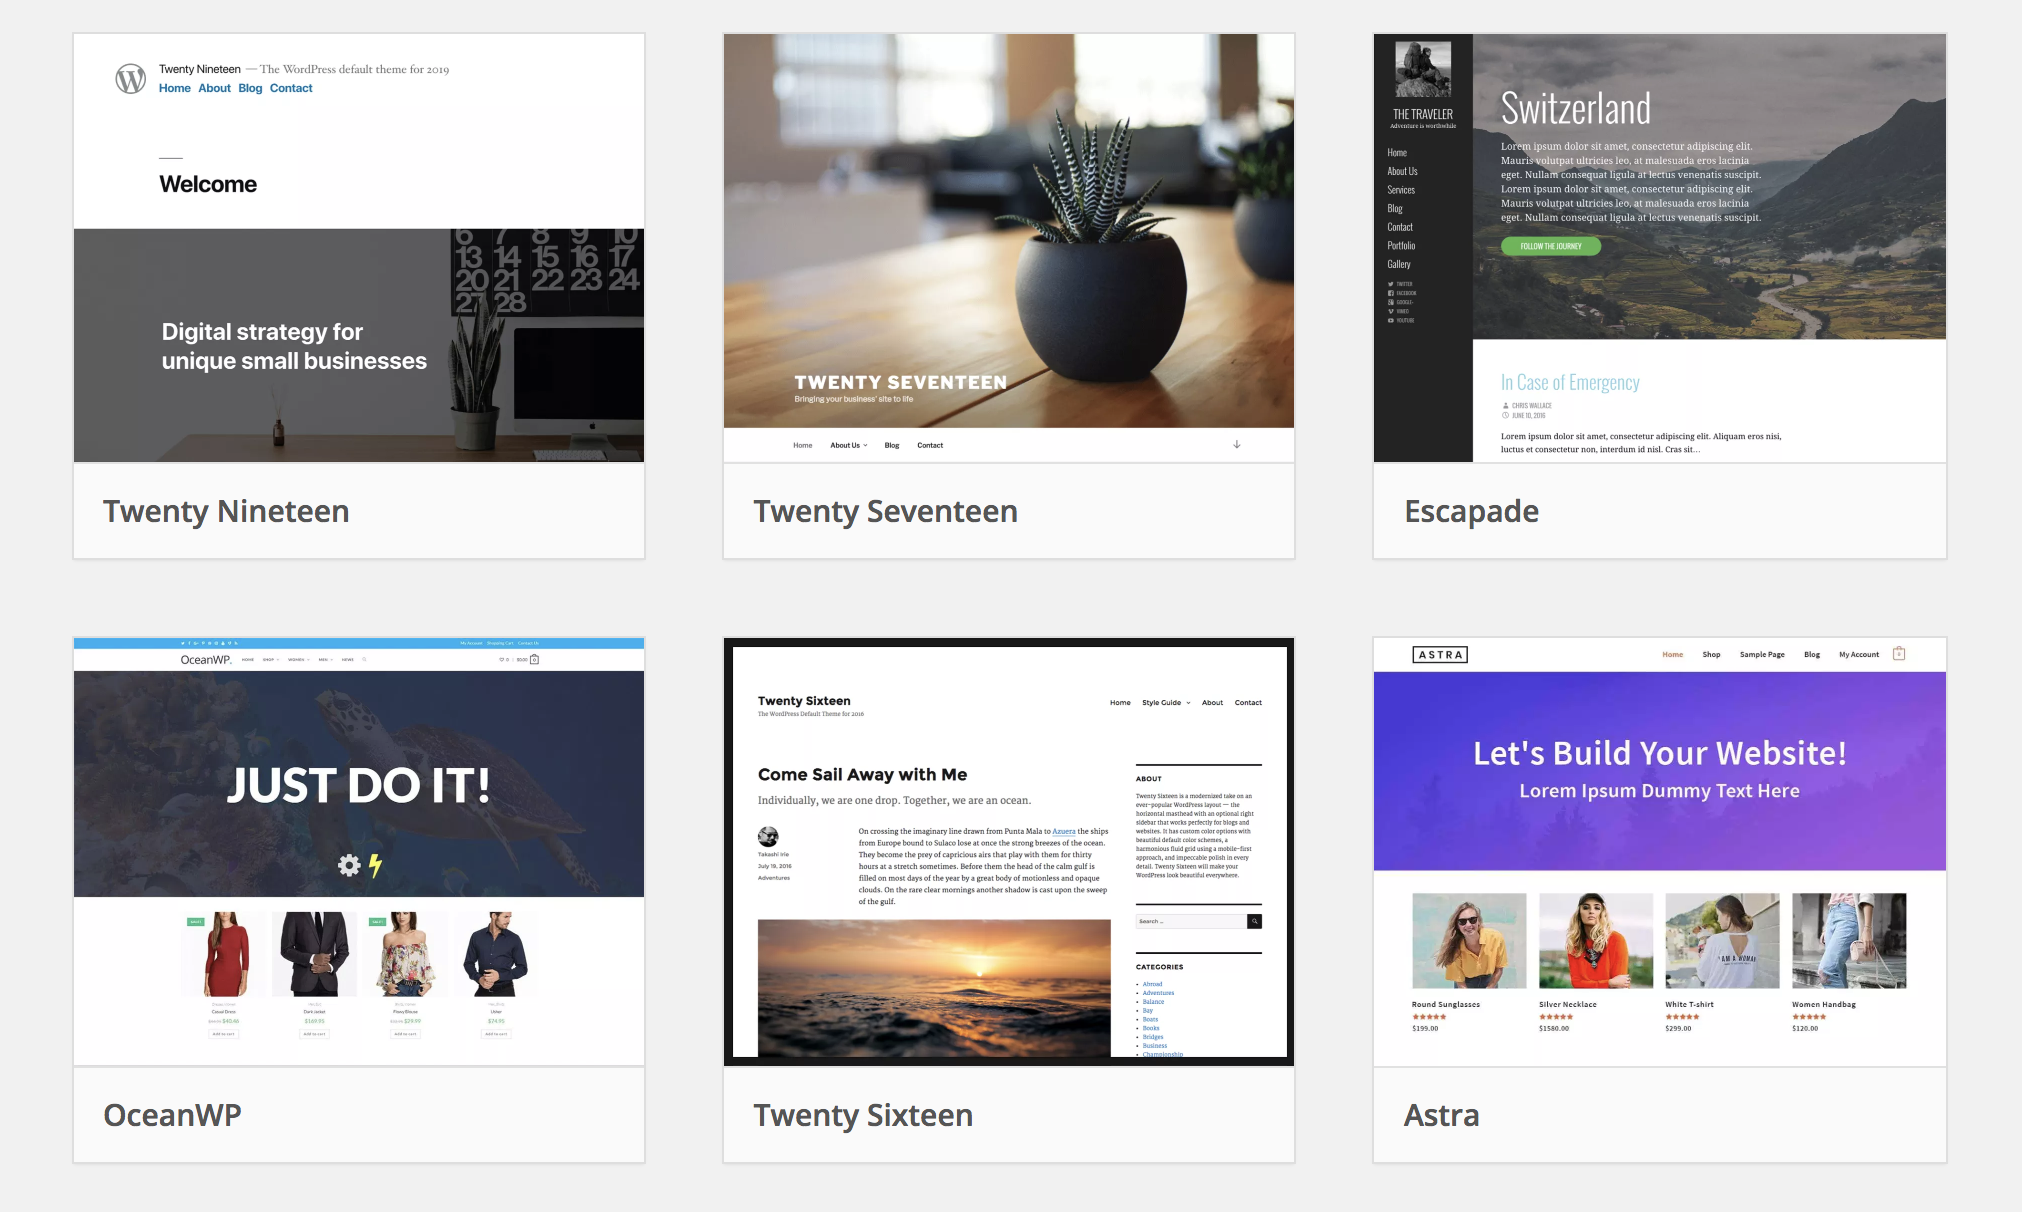 WordPress Themes | 15 Places To Find The Best Free WordPress Themes